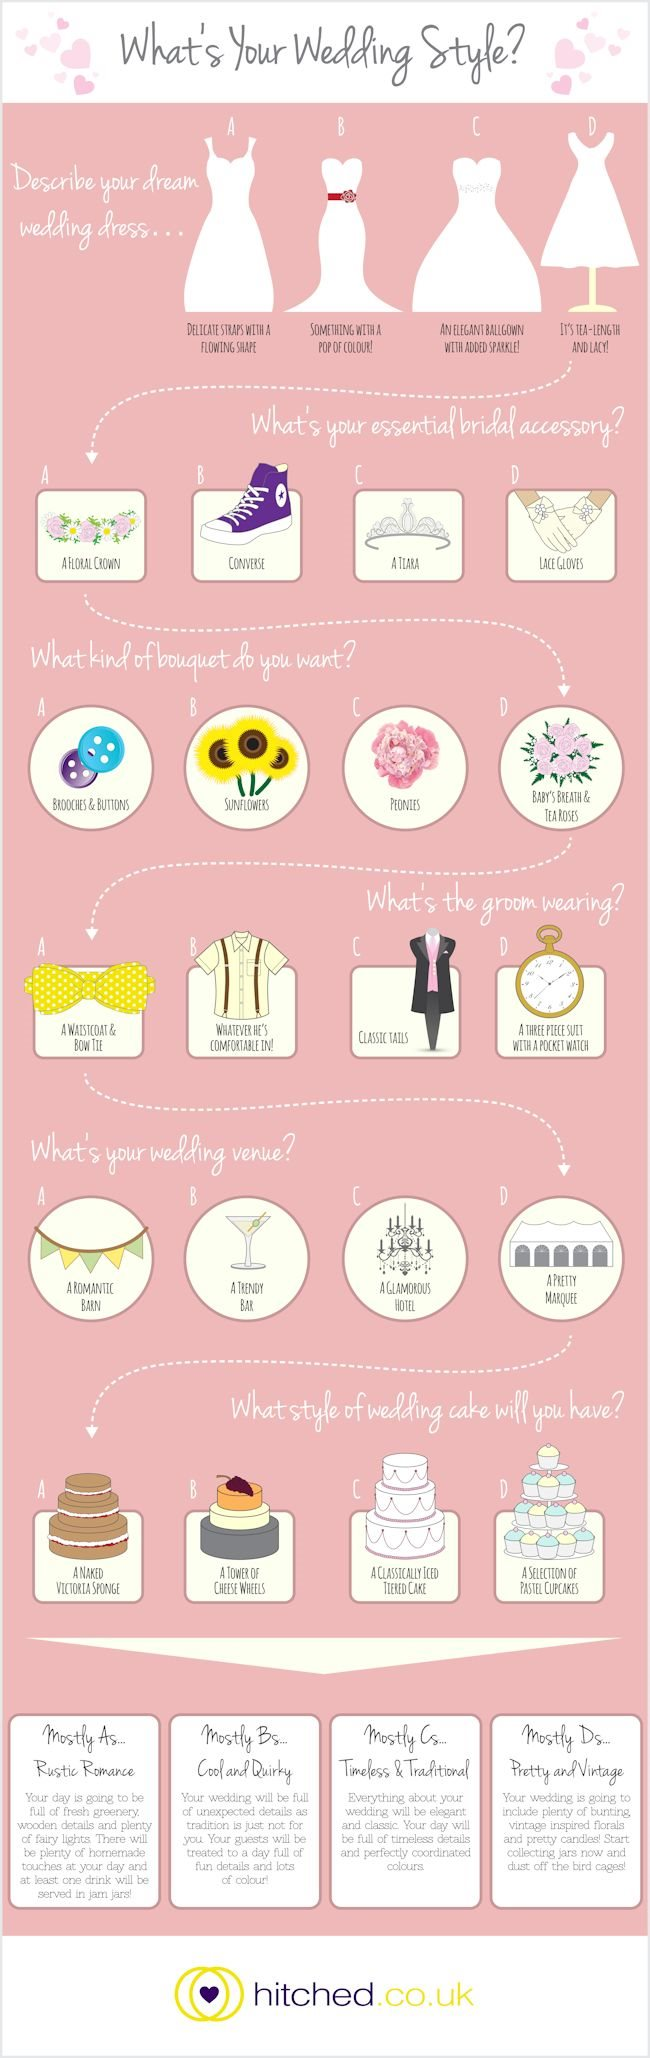 What's Your Wedding Style? by Hitched.co.uk